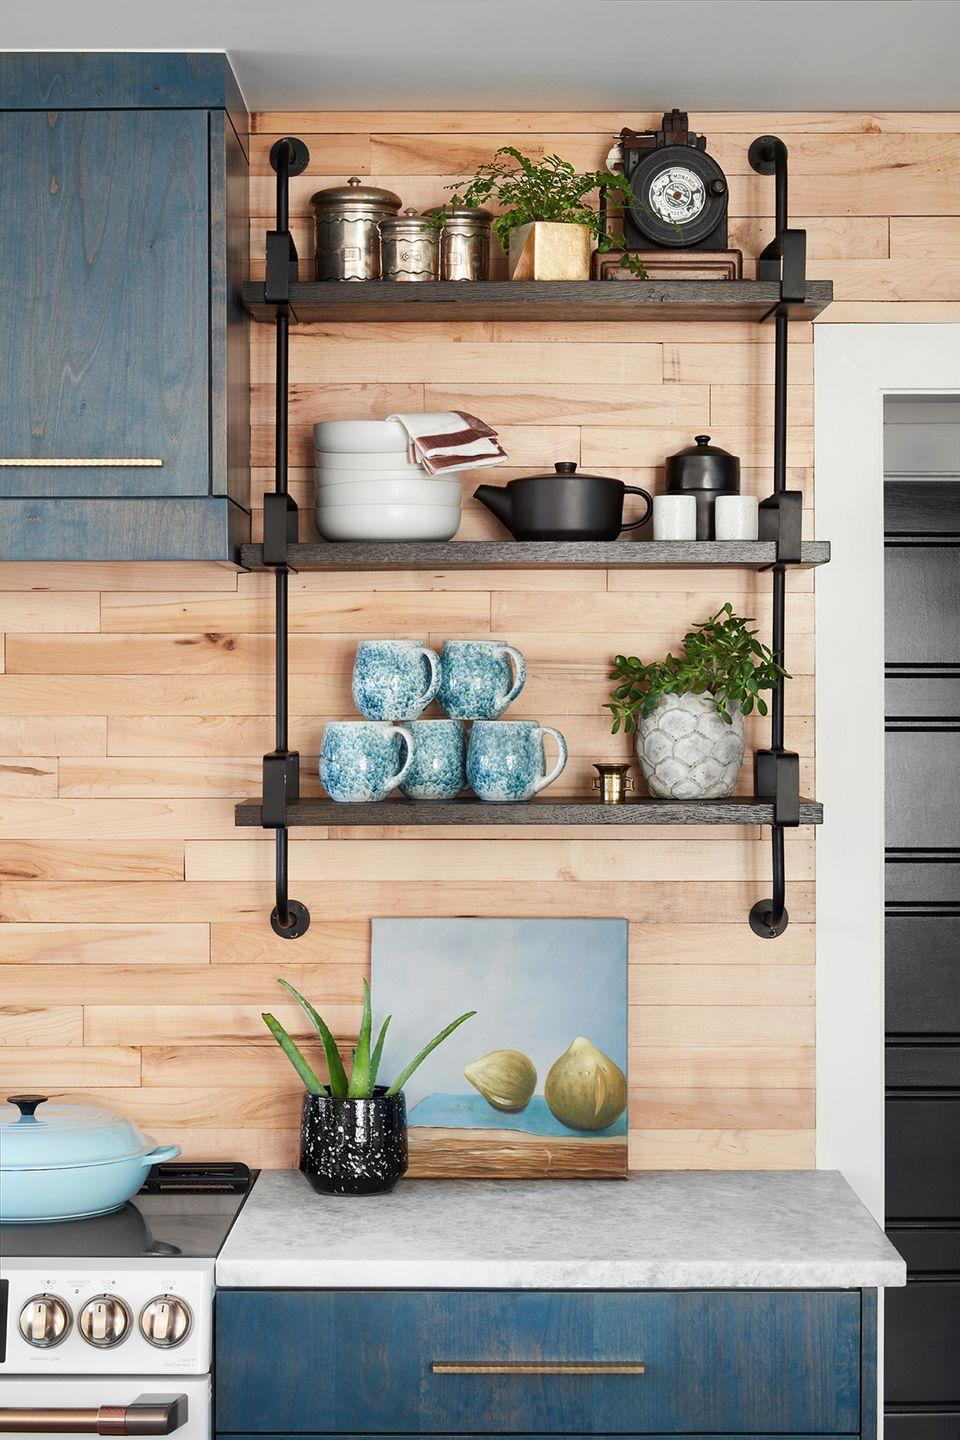 <p>Planed salvaged basketball court floor boards make for a striking backsplash in this kitchen designed by Grace Mitchell of HGTV's One of a Kind.</p>